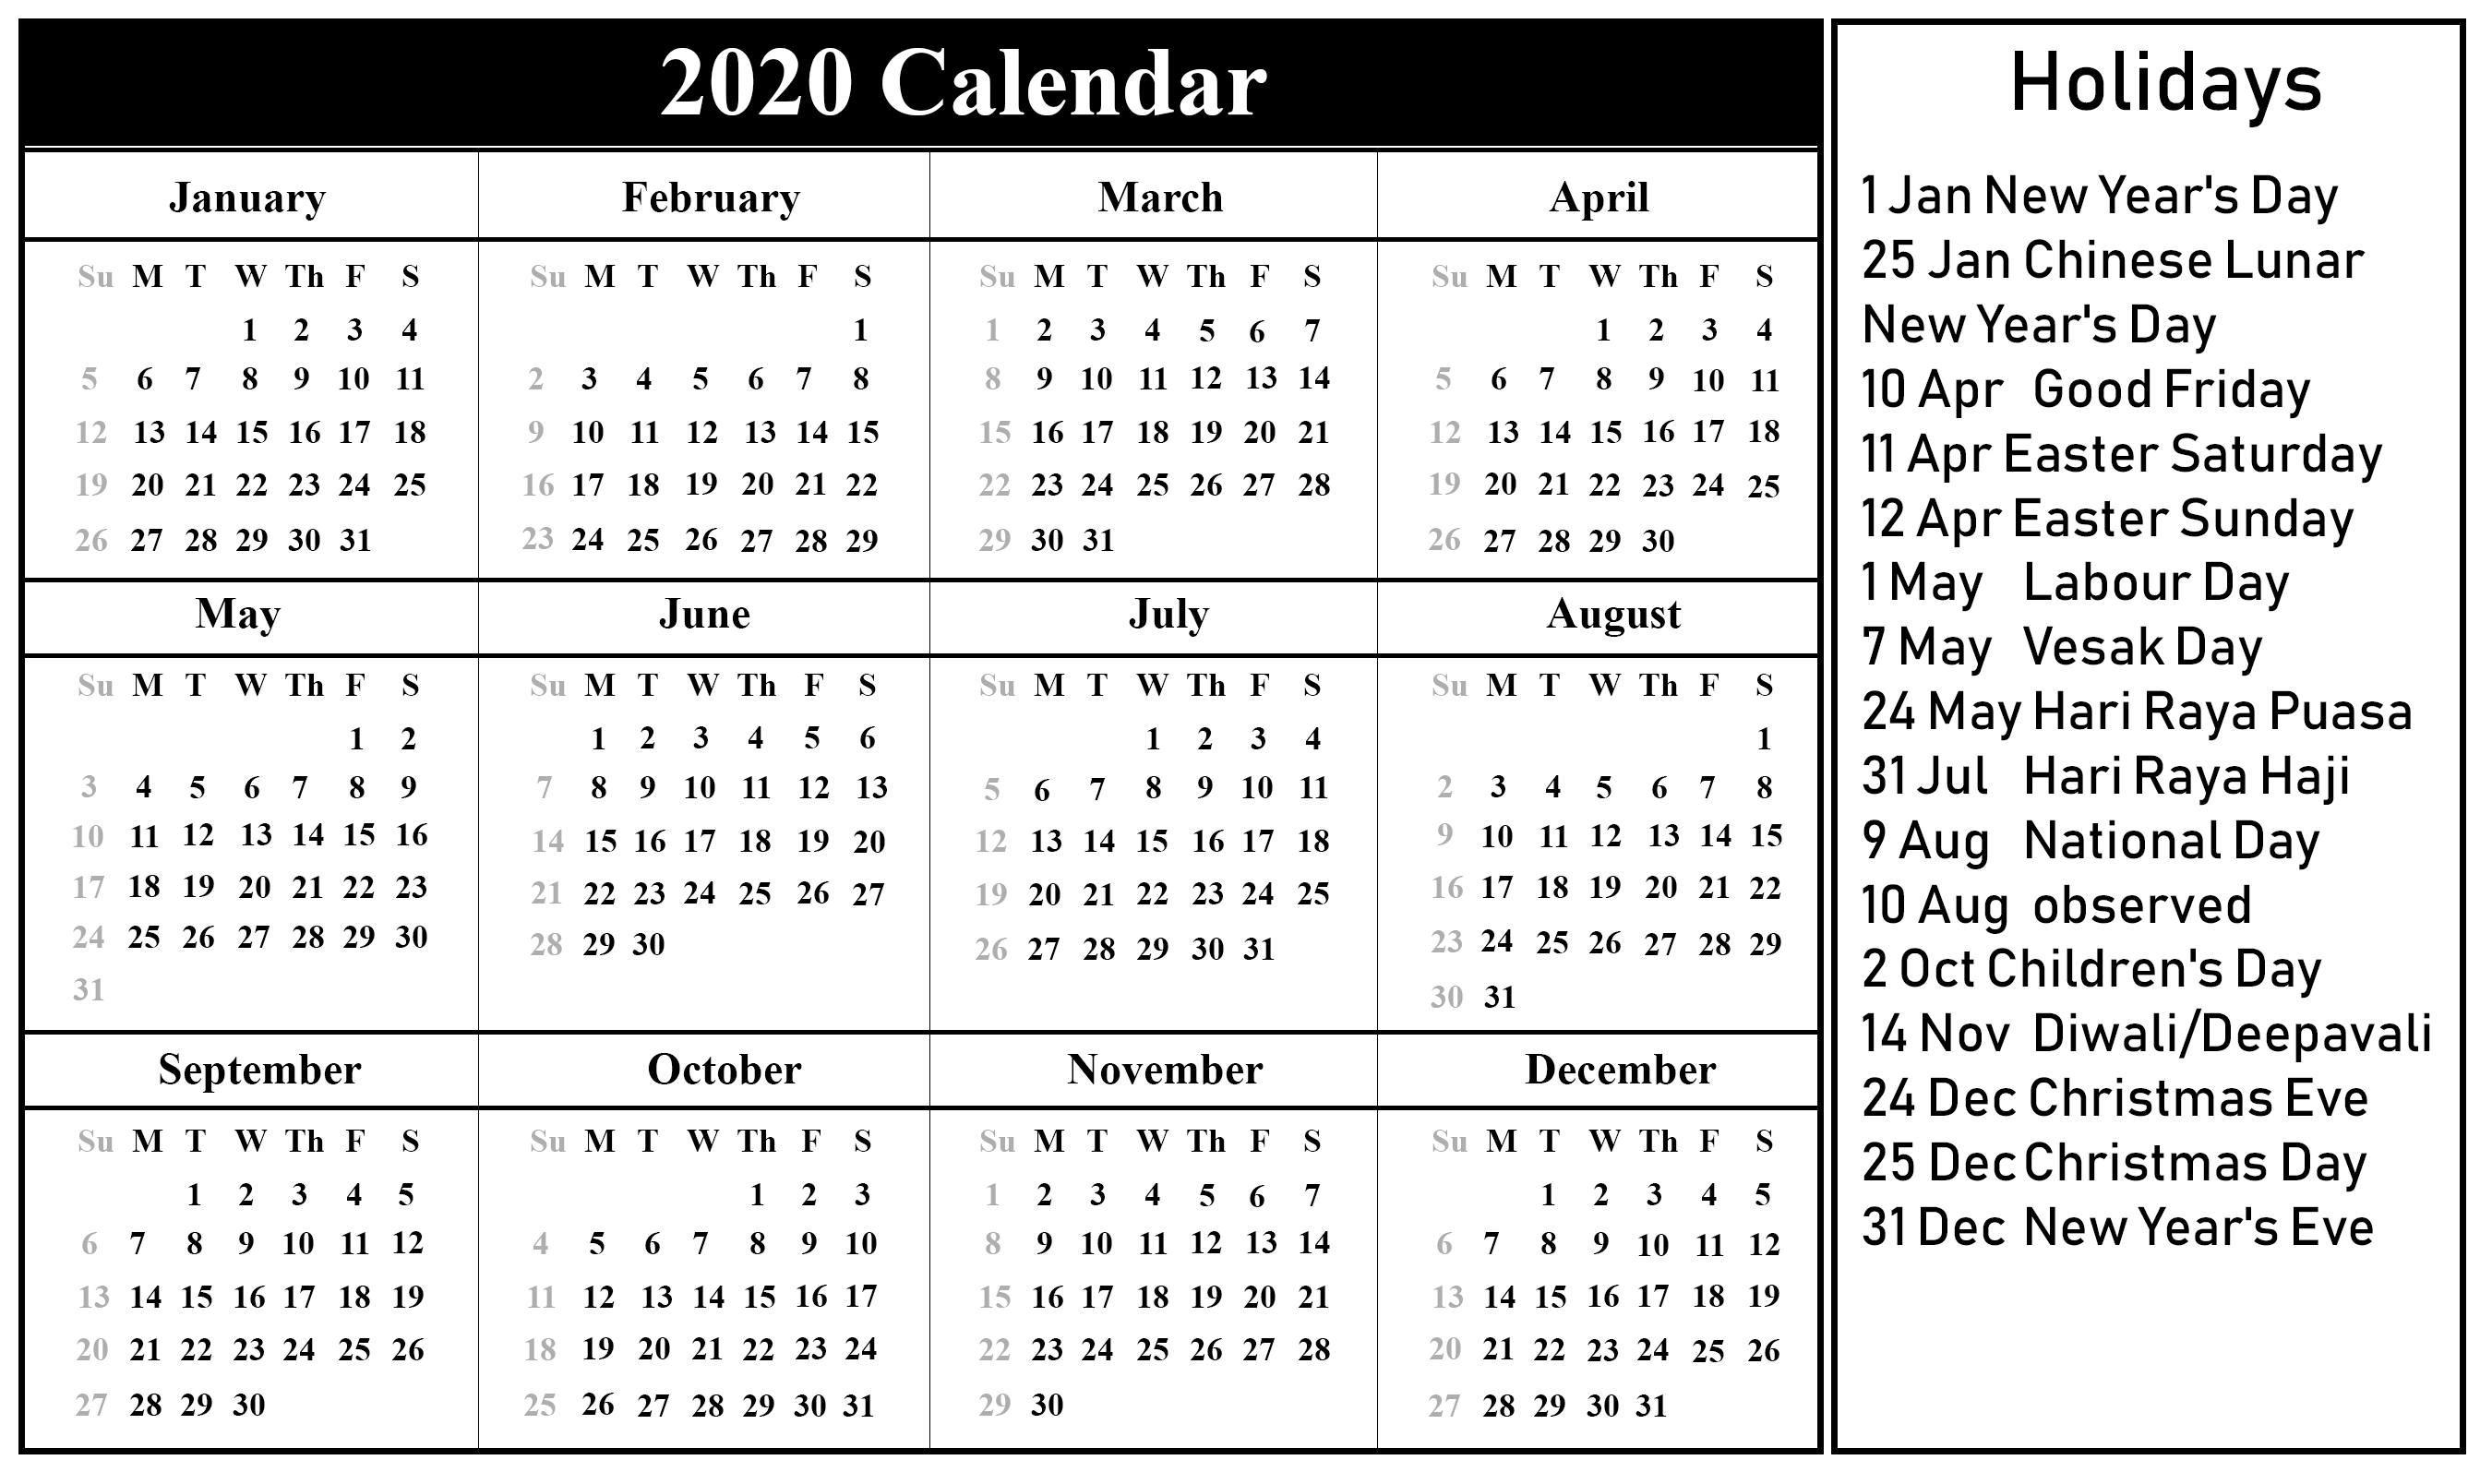 Printable 2020 Calendar With Holidays | Monthly Calendar throughout Yearly Calendar Of Special Days 2020